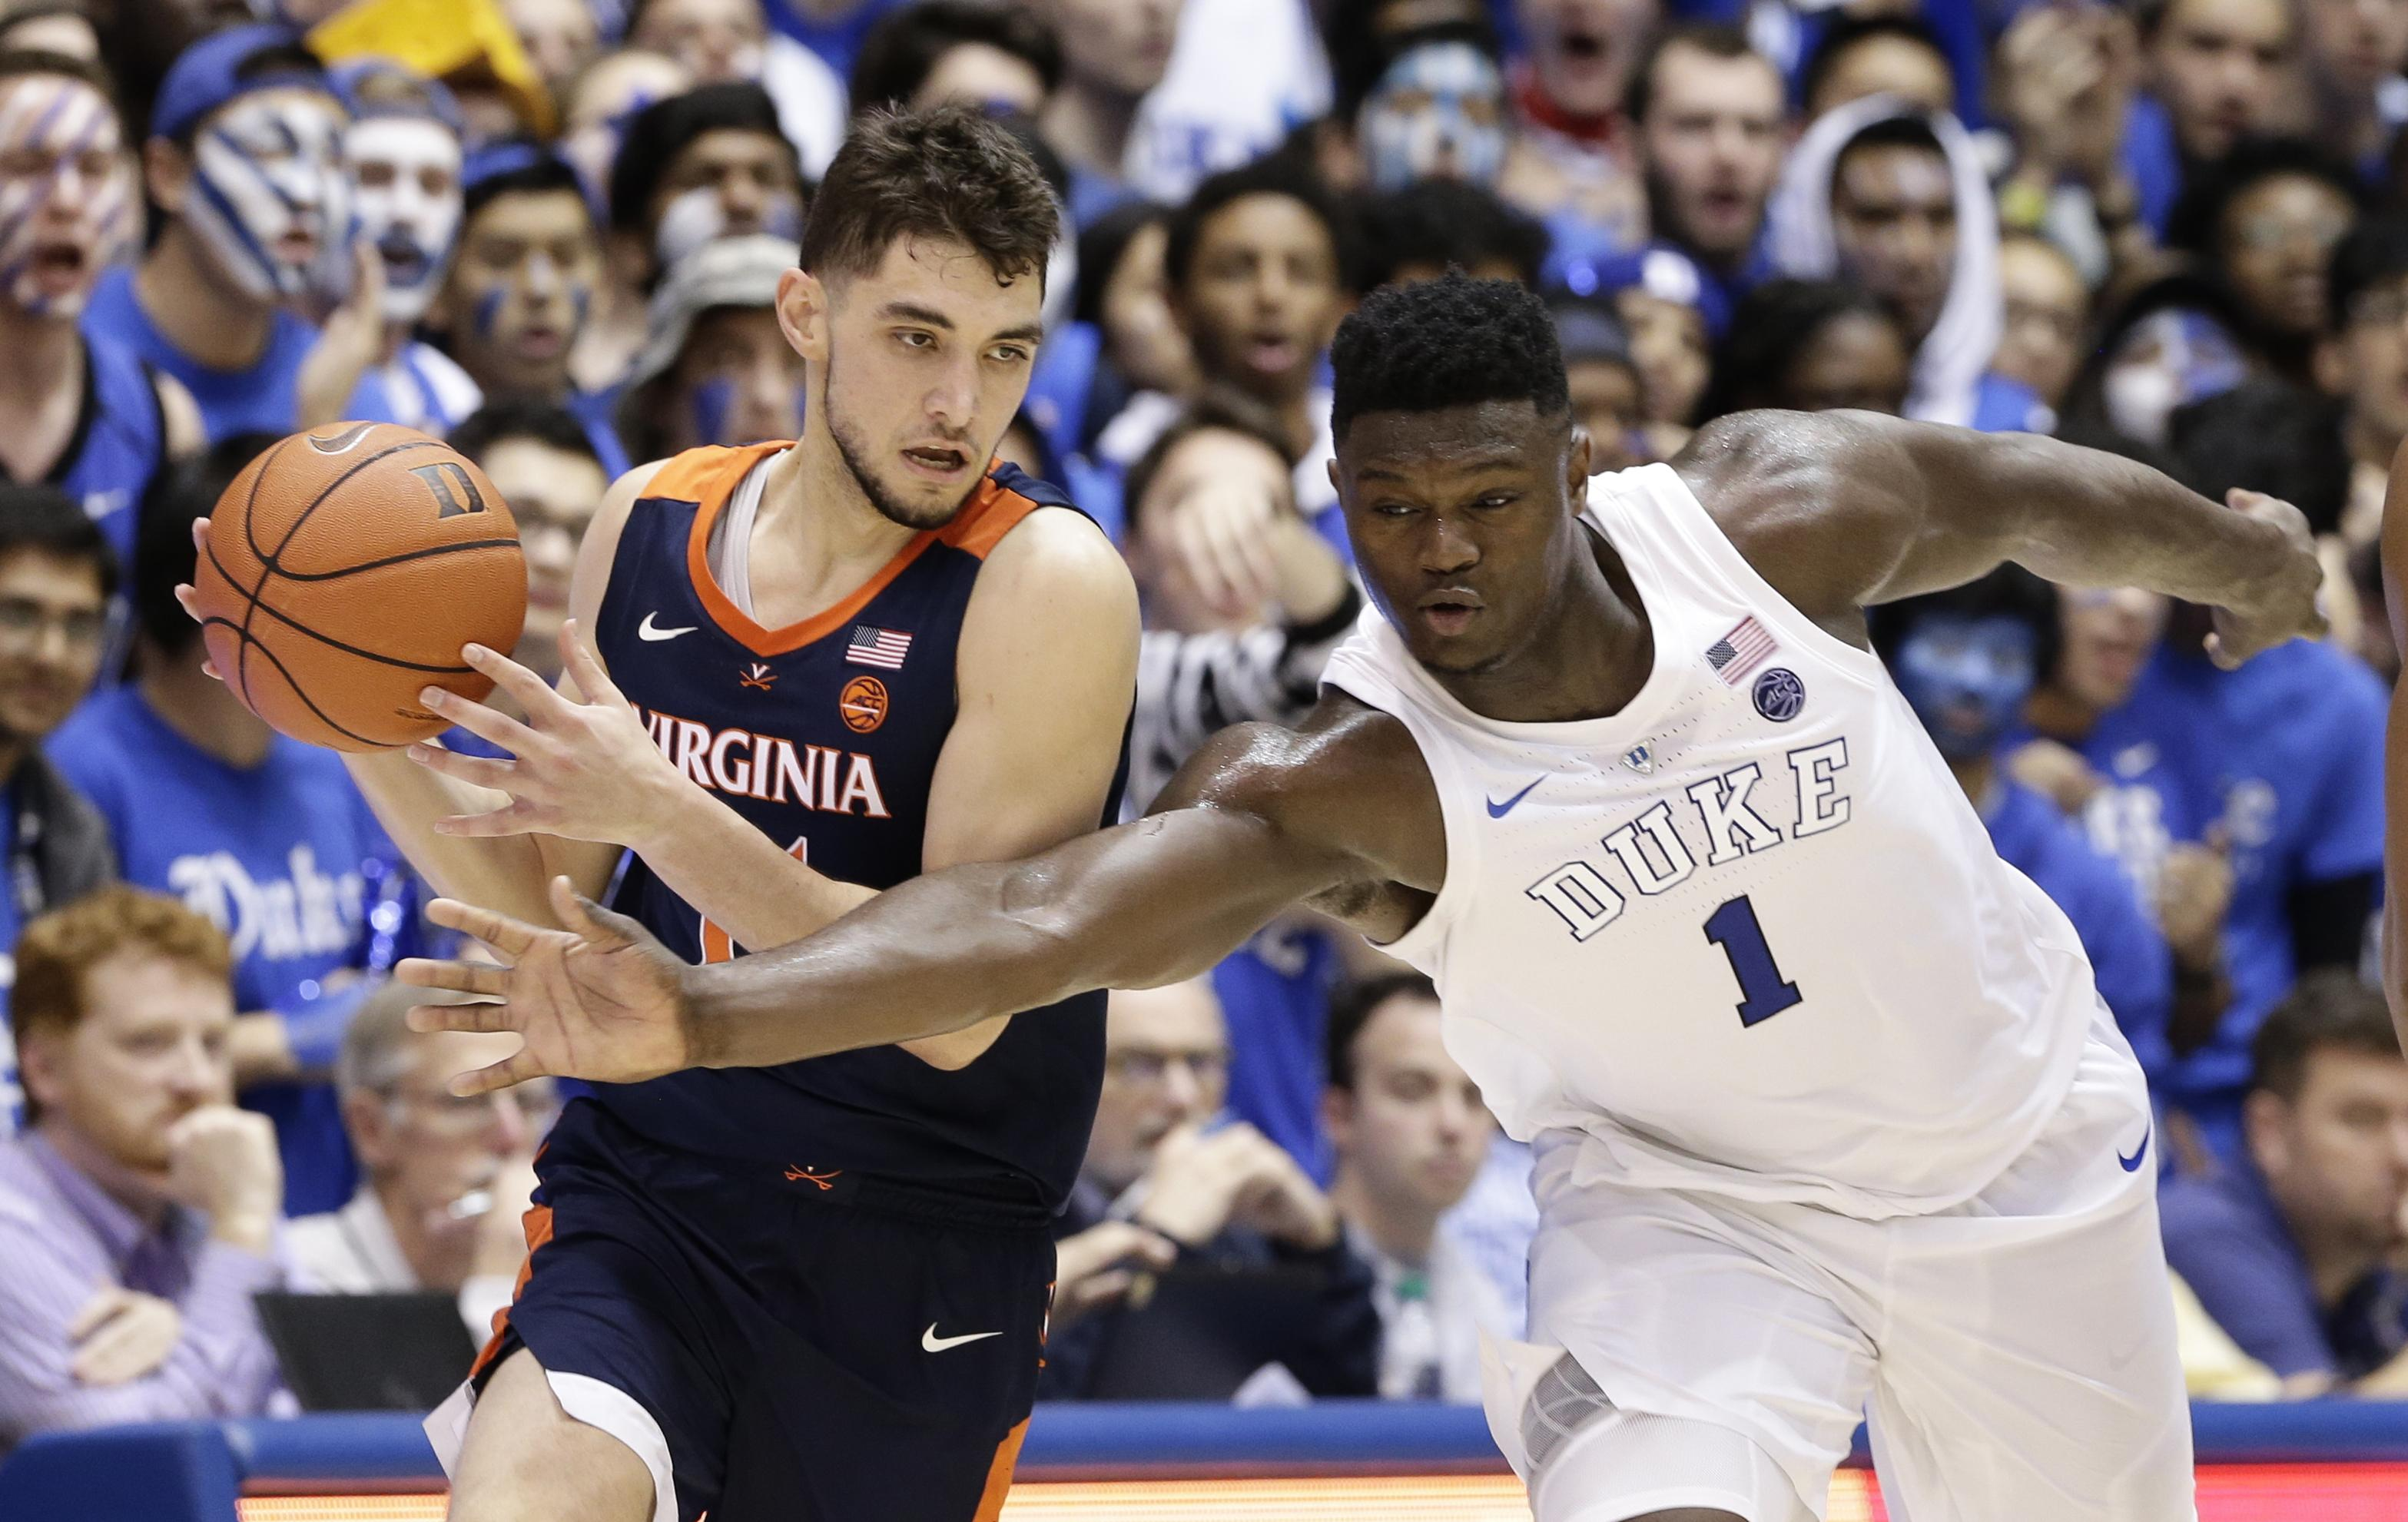 e28240a6c676 Duke s Zion Williamson reaches to steal the ball from Virginia s Ty Jerome  during the second half